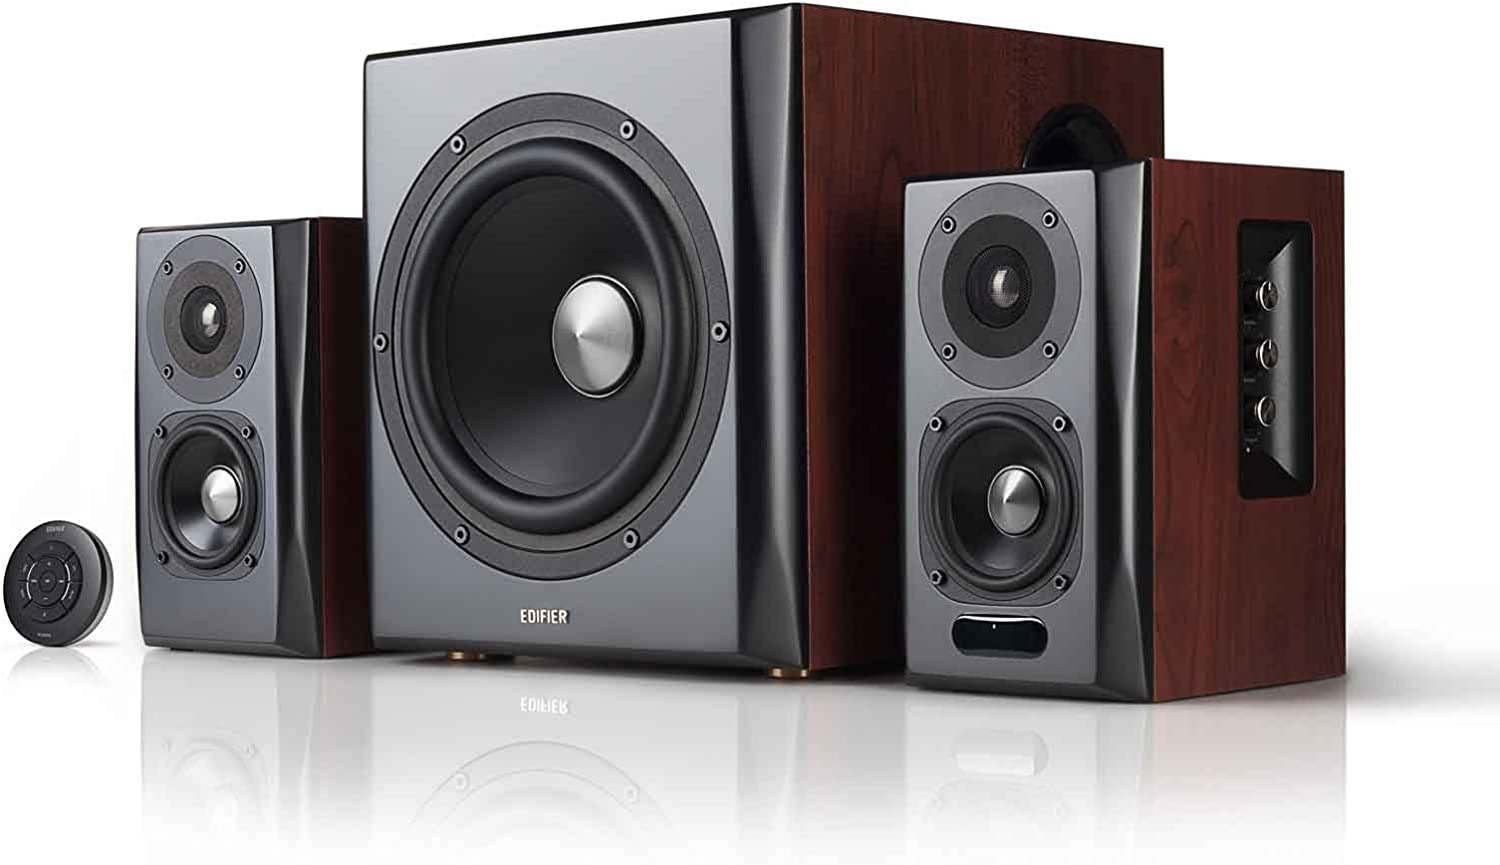 Edifier S350DB Bookshelf Speaker and Subwoofer 2.1 Speaker System Bluetooth v4.1 aptX Wireless Sound for Computer Rooms, Living Rooms and Dens